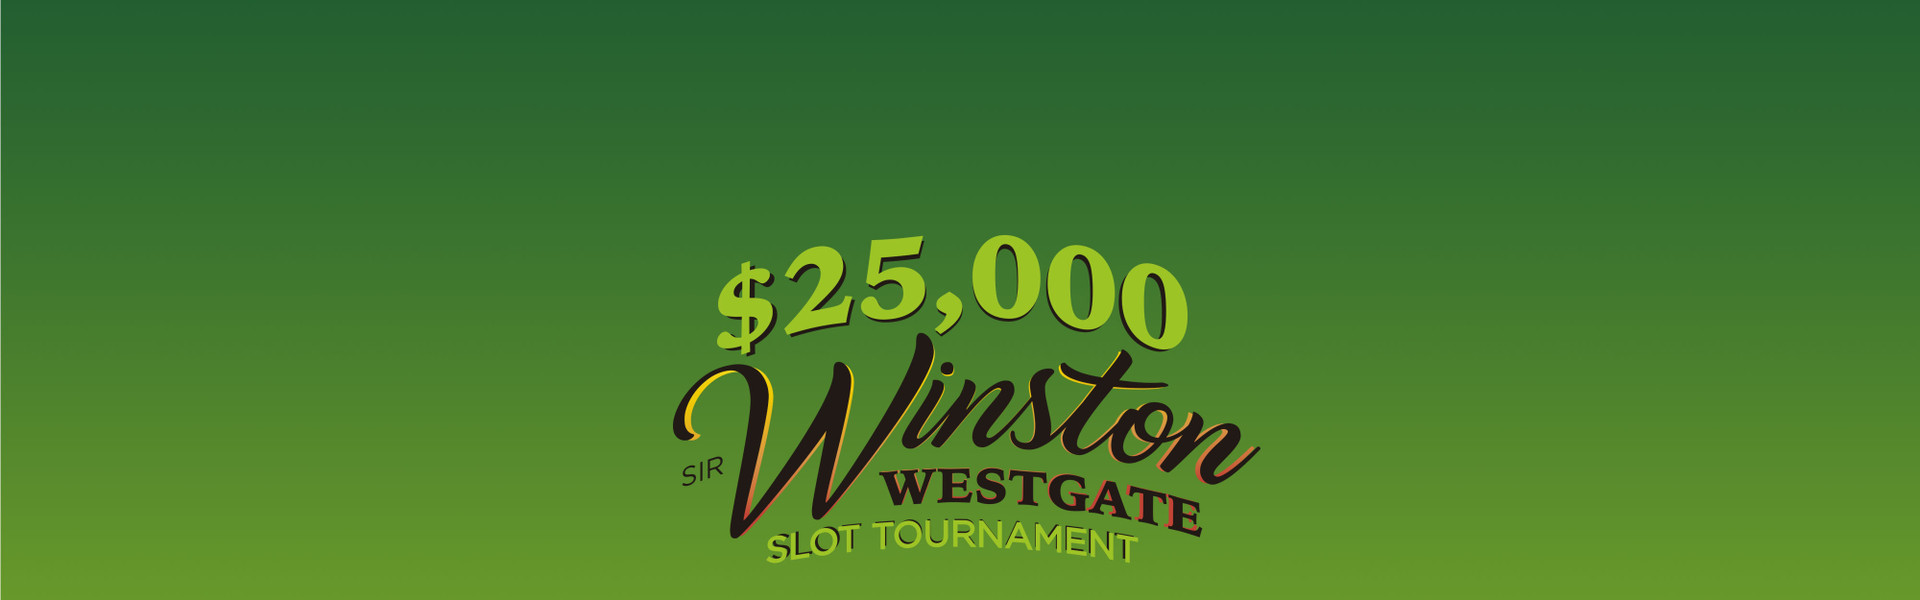 Win Big at the Sir Winston Westgate $25,000 Slot Tournament June 7-8, 2019 at the Westgate Las Vegas Resort & Casino